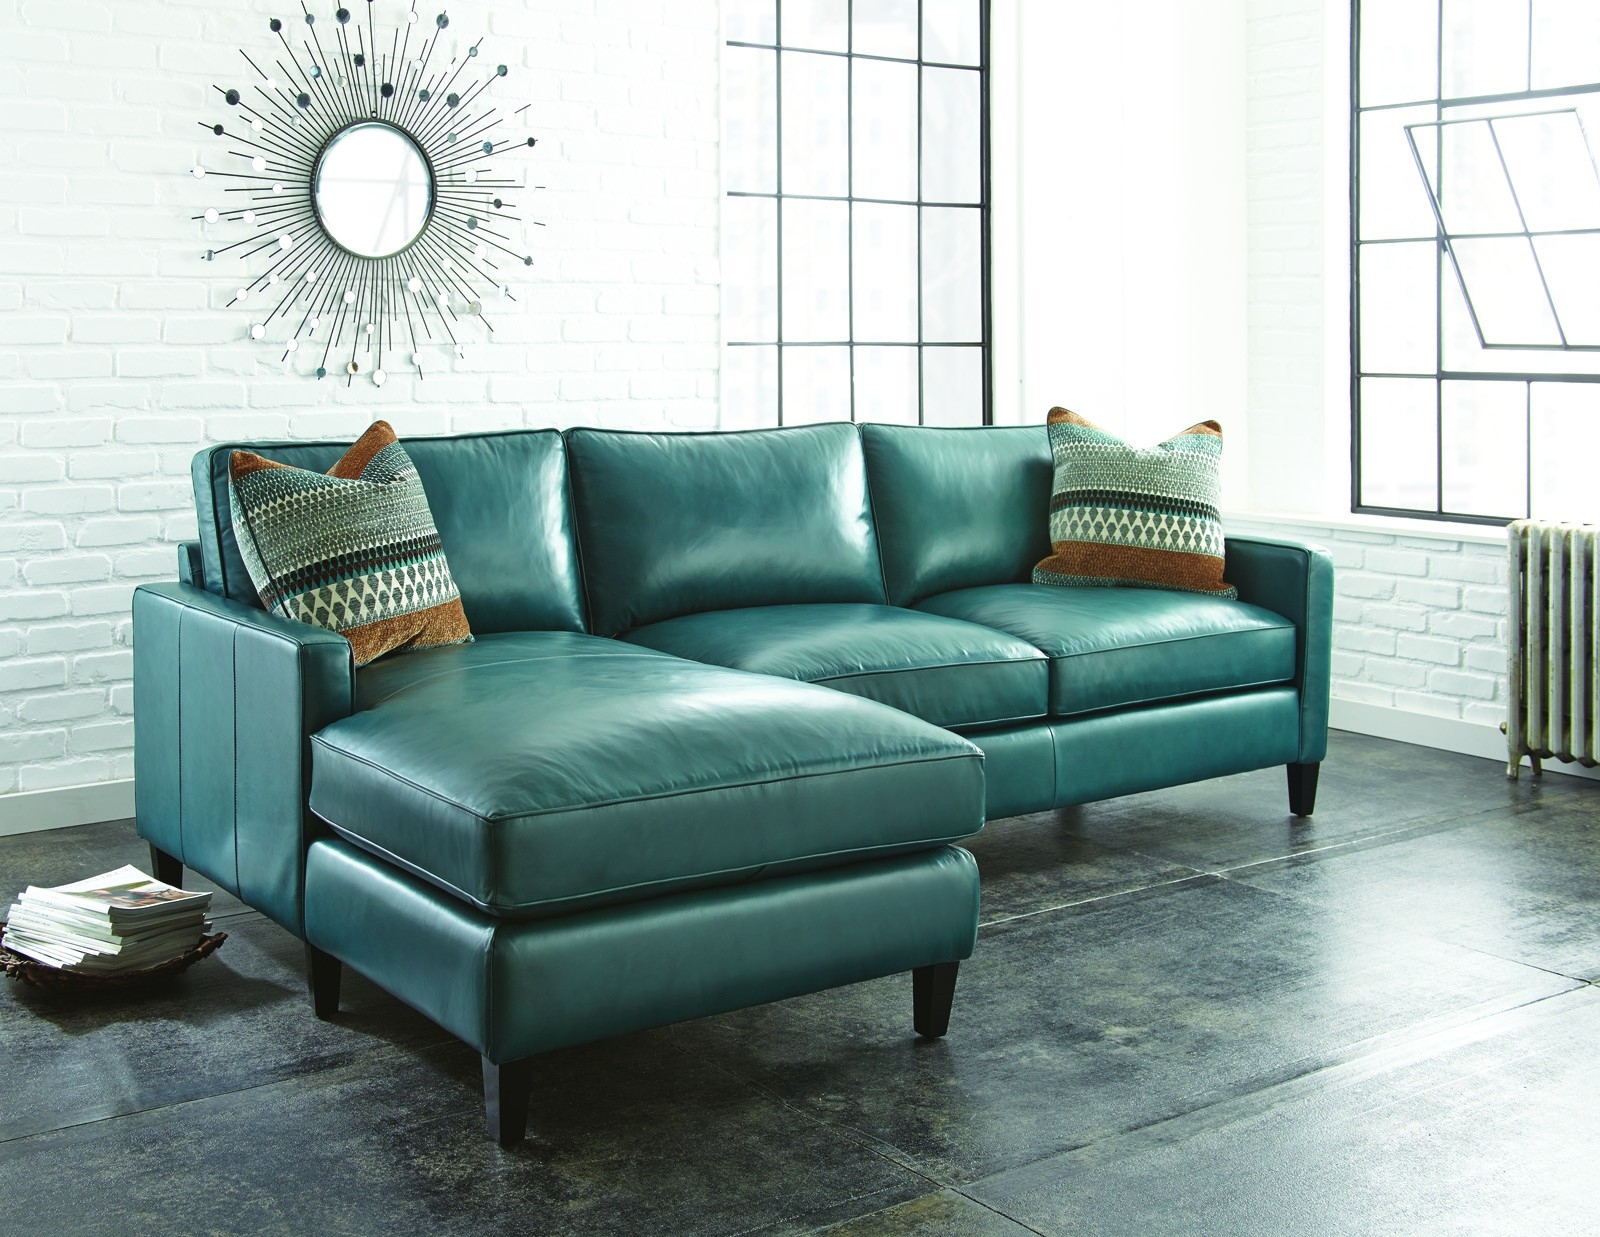 How To Reupholster Leather Furniture In 5 Easy Steps Living Room With Regard To Expensive Sectional Sofas (Image 8 of 15)